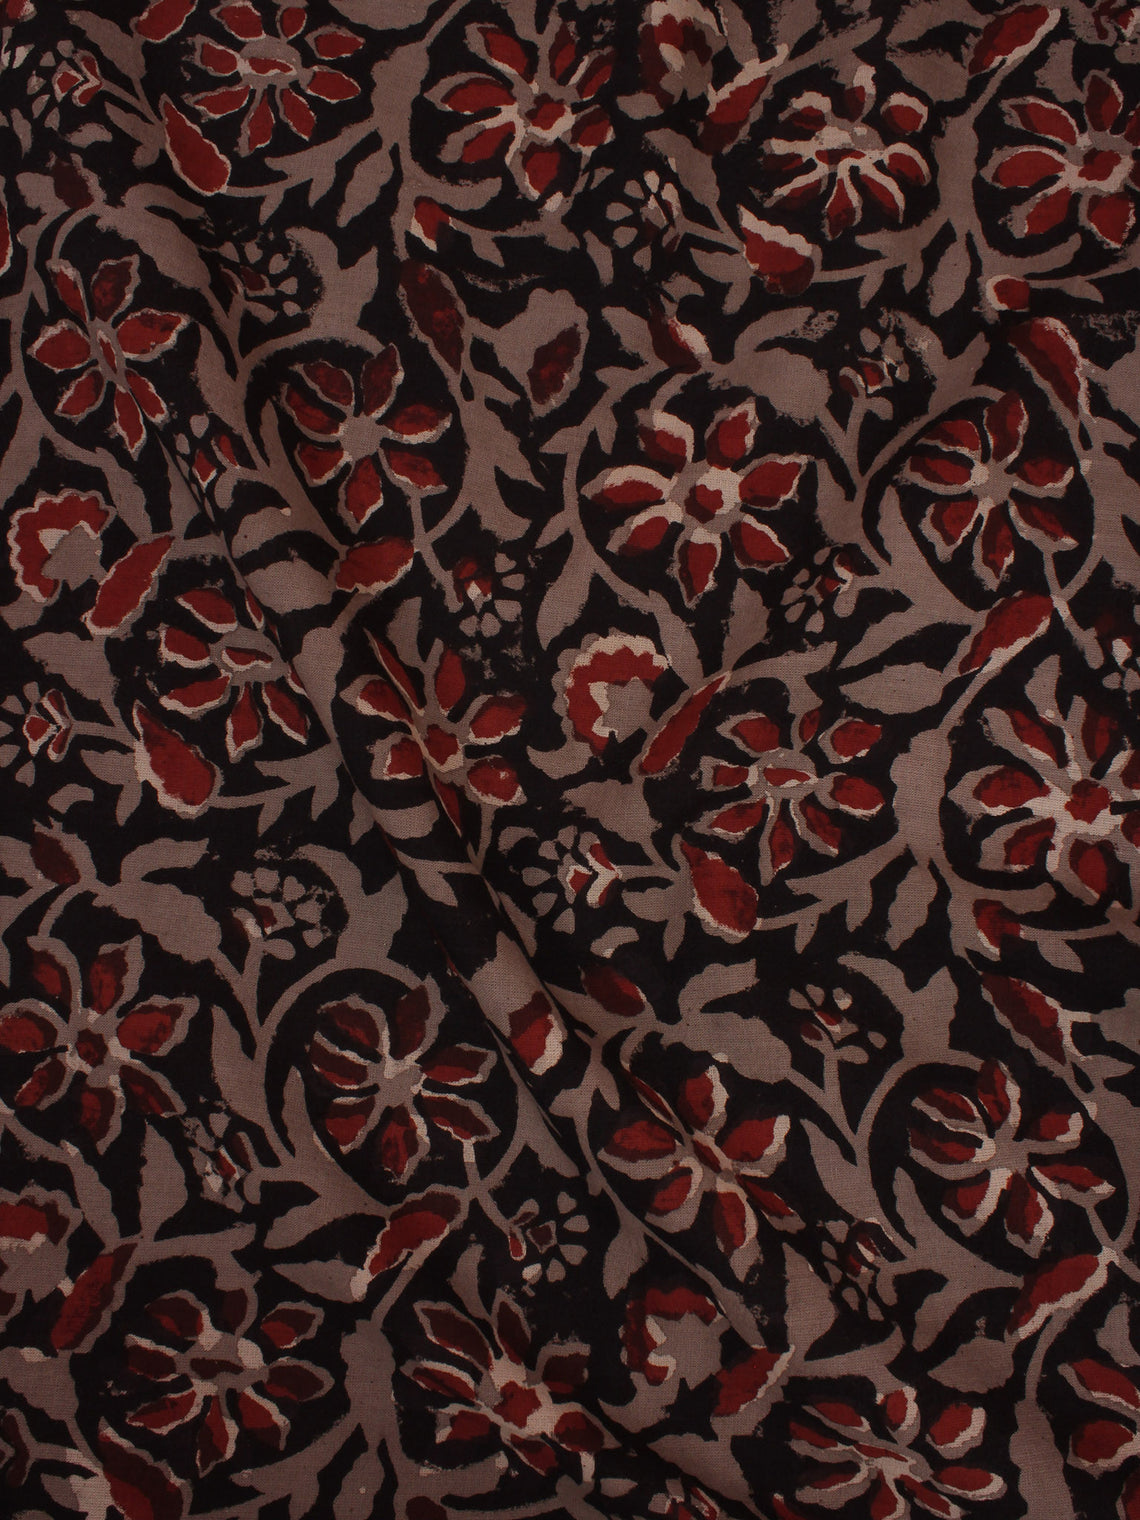 Black Brown Maroon Hand Block Printed Cotton Cambric Fabric Per Meter - F0916443